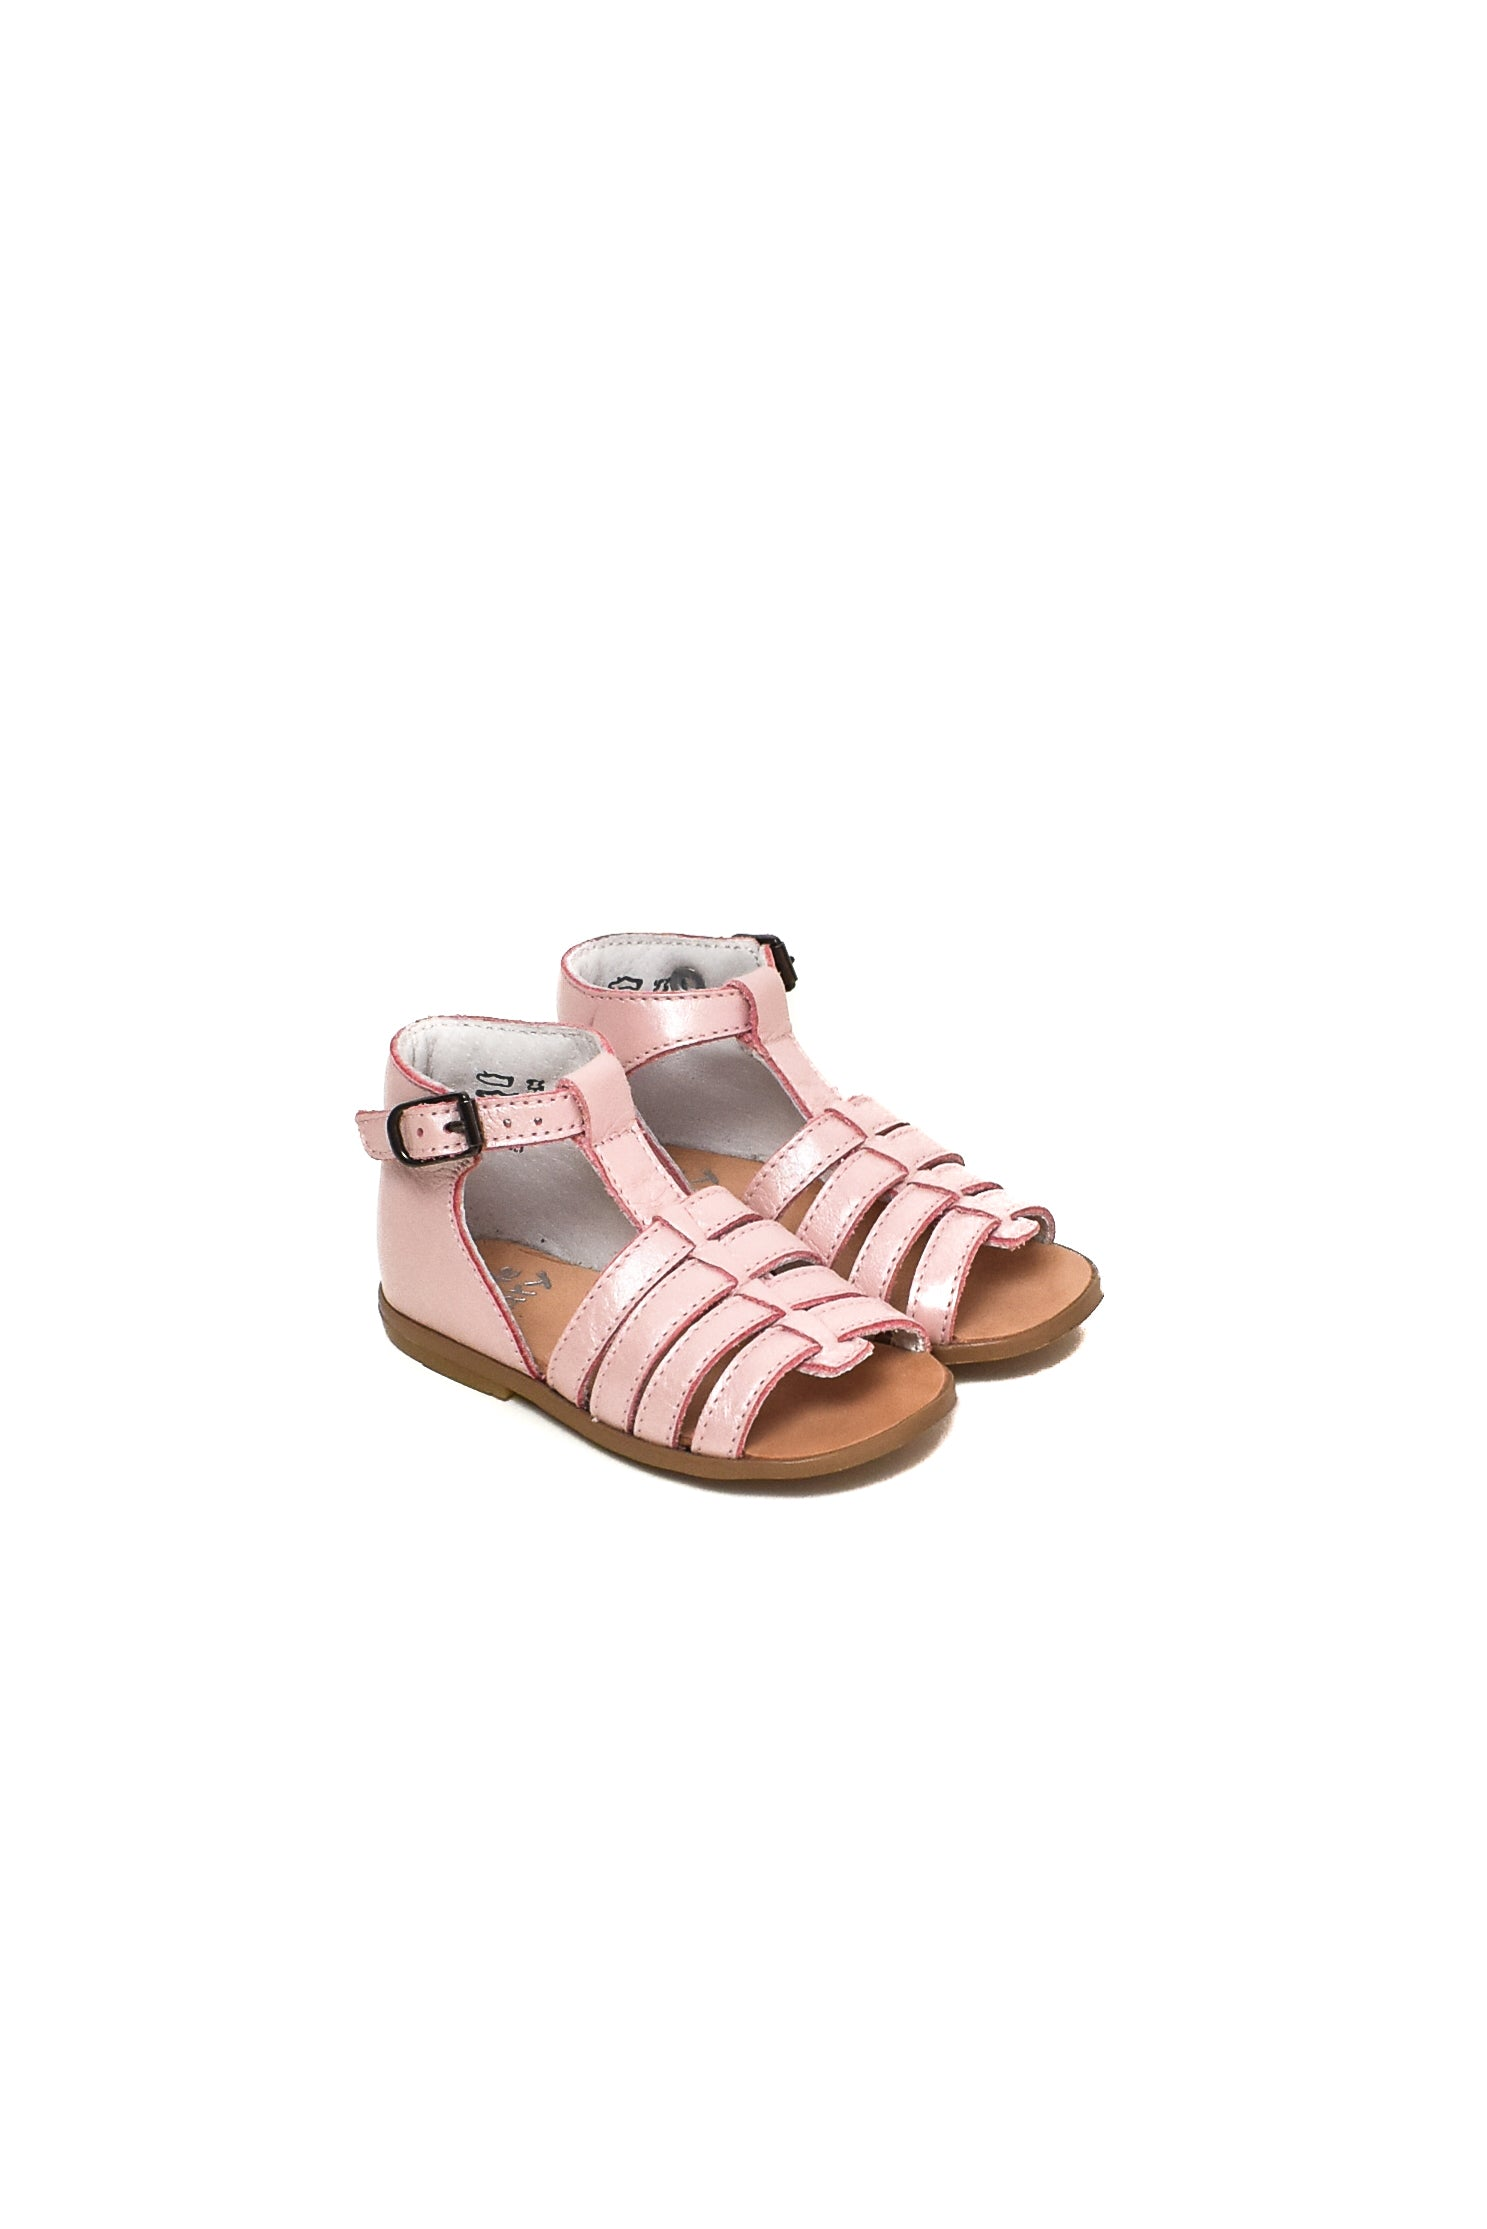 10007872 Little Mary Kids~Sandals 12M-3T (EU 20-25) at Retykle